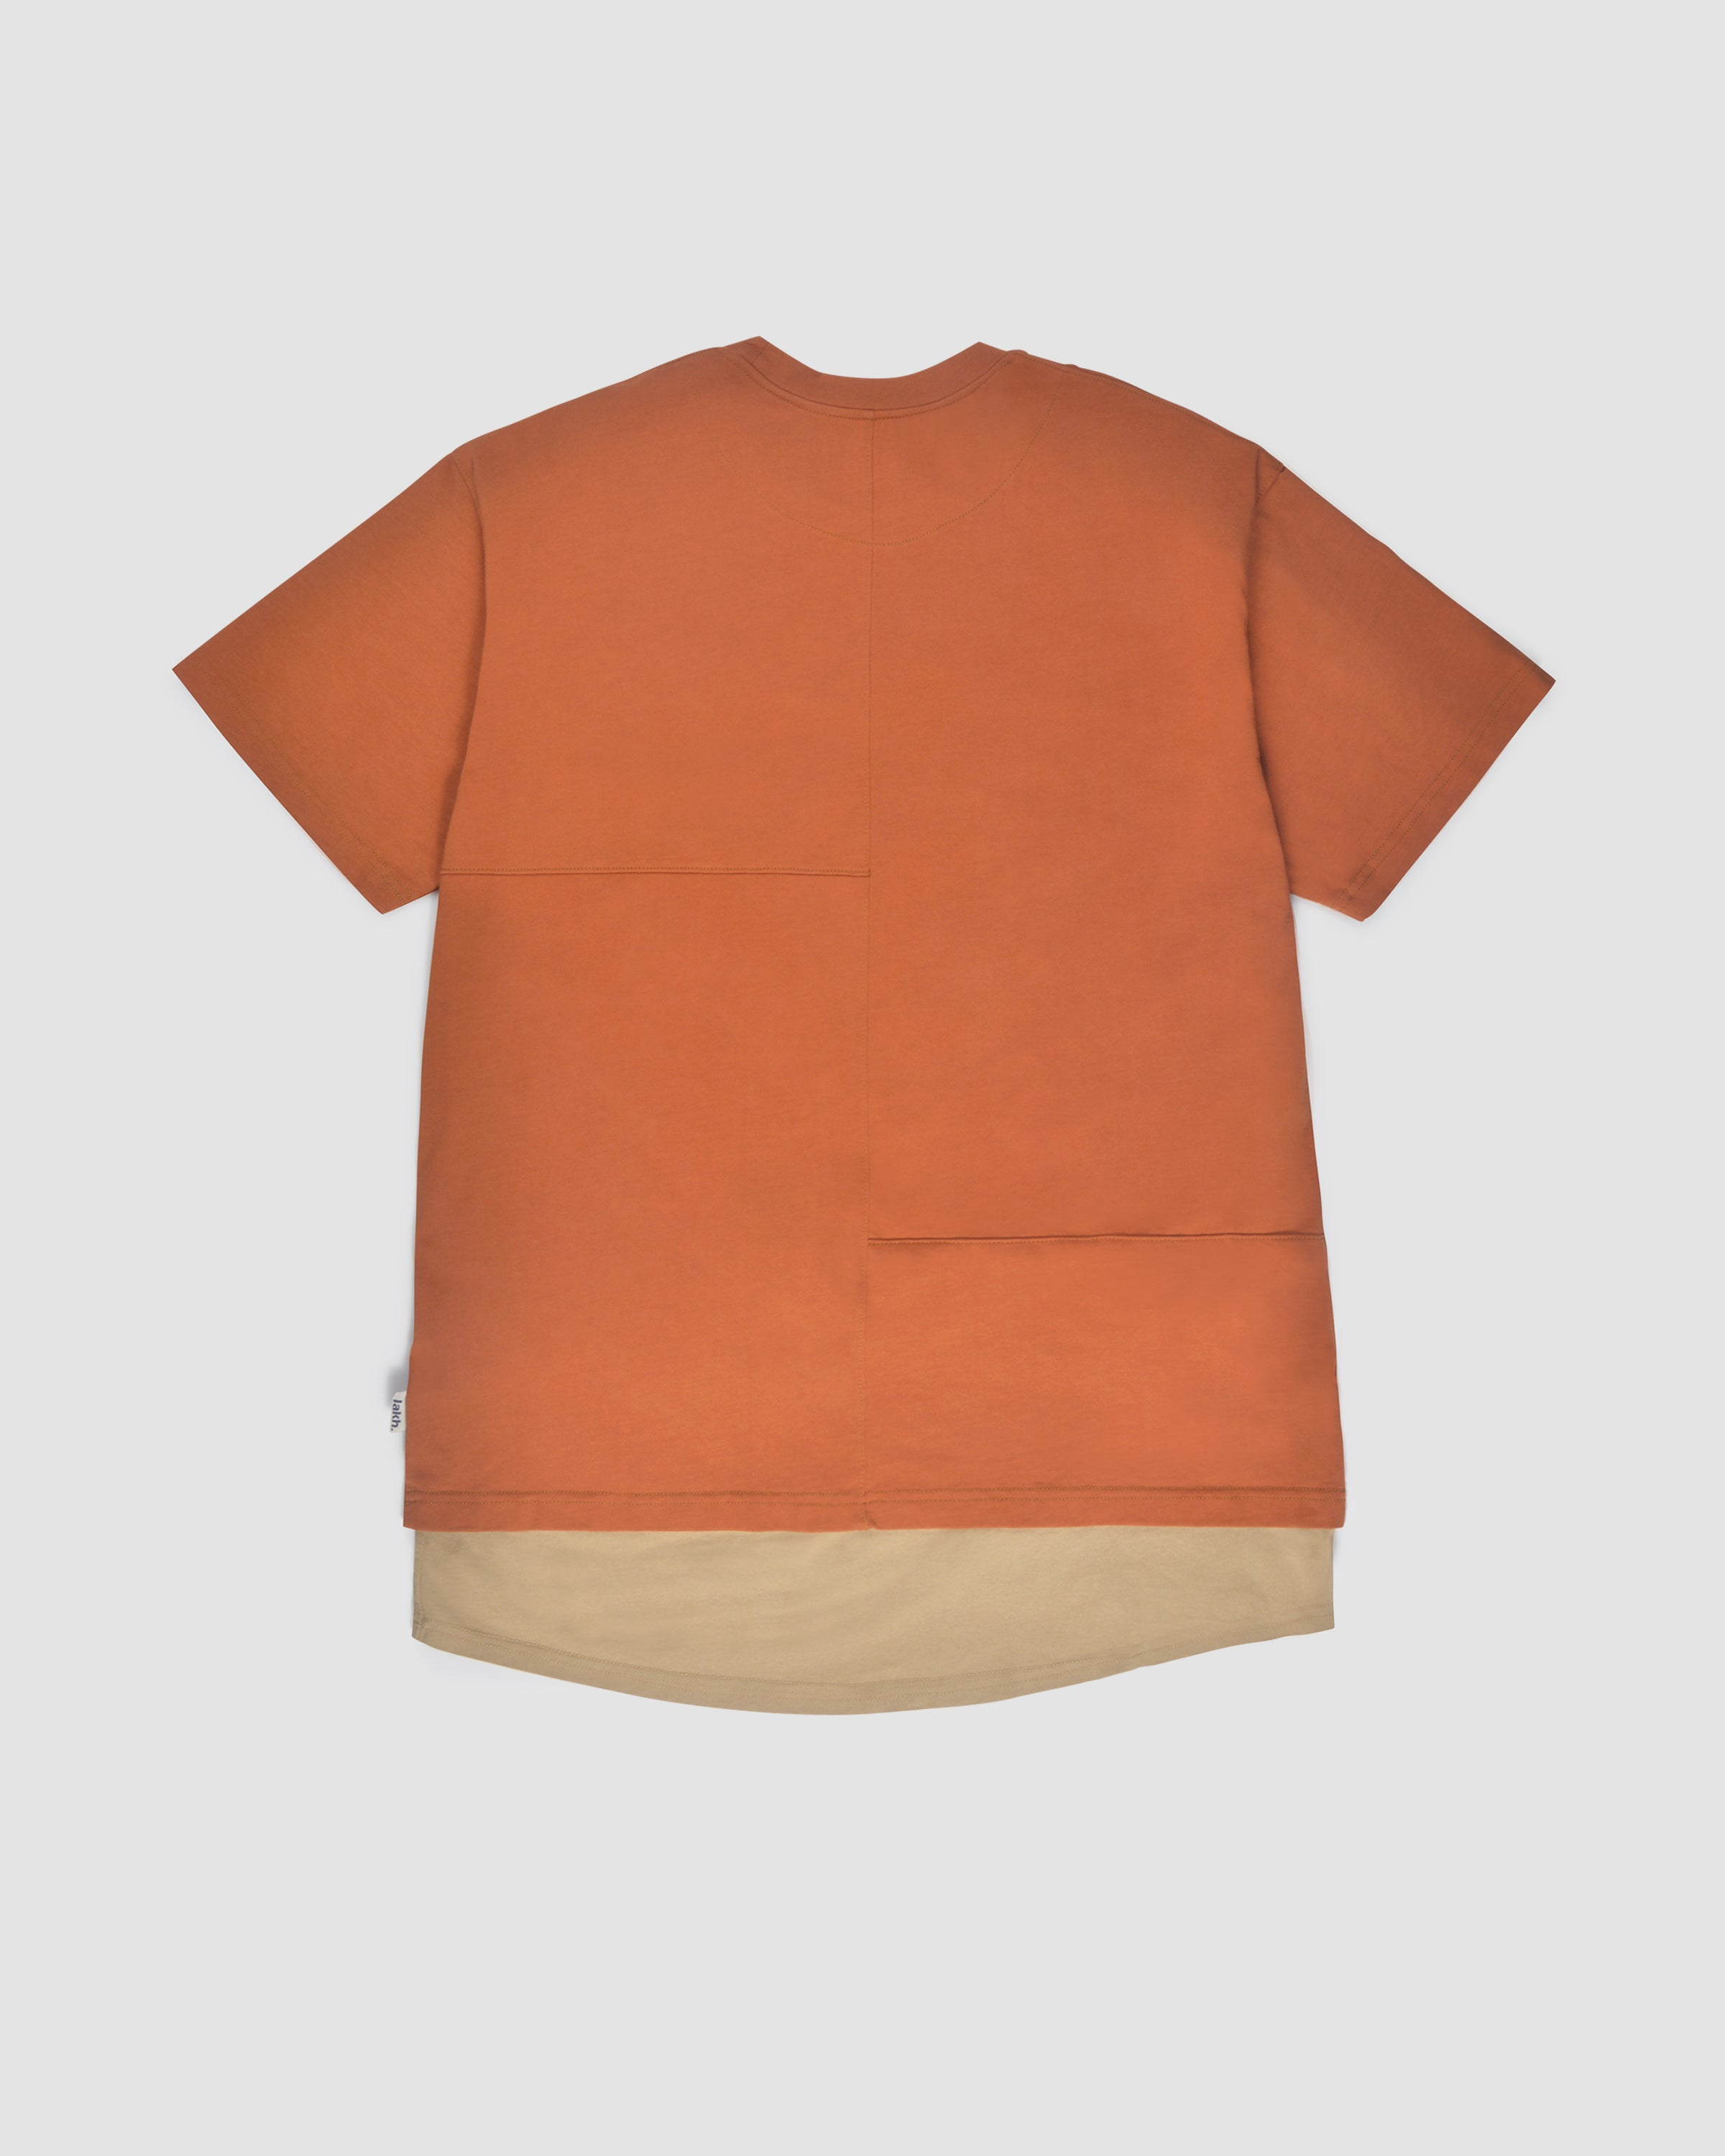 Layers Patch Tee - Orange